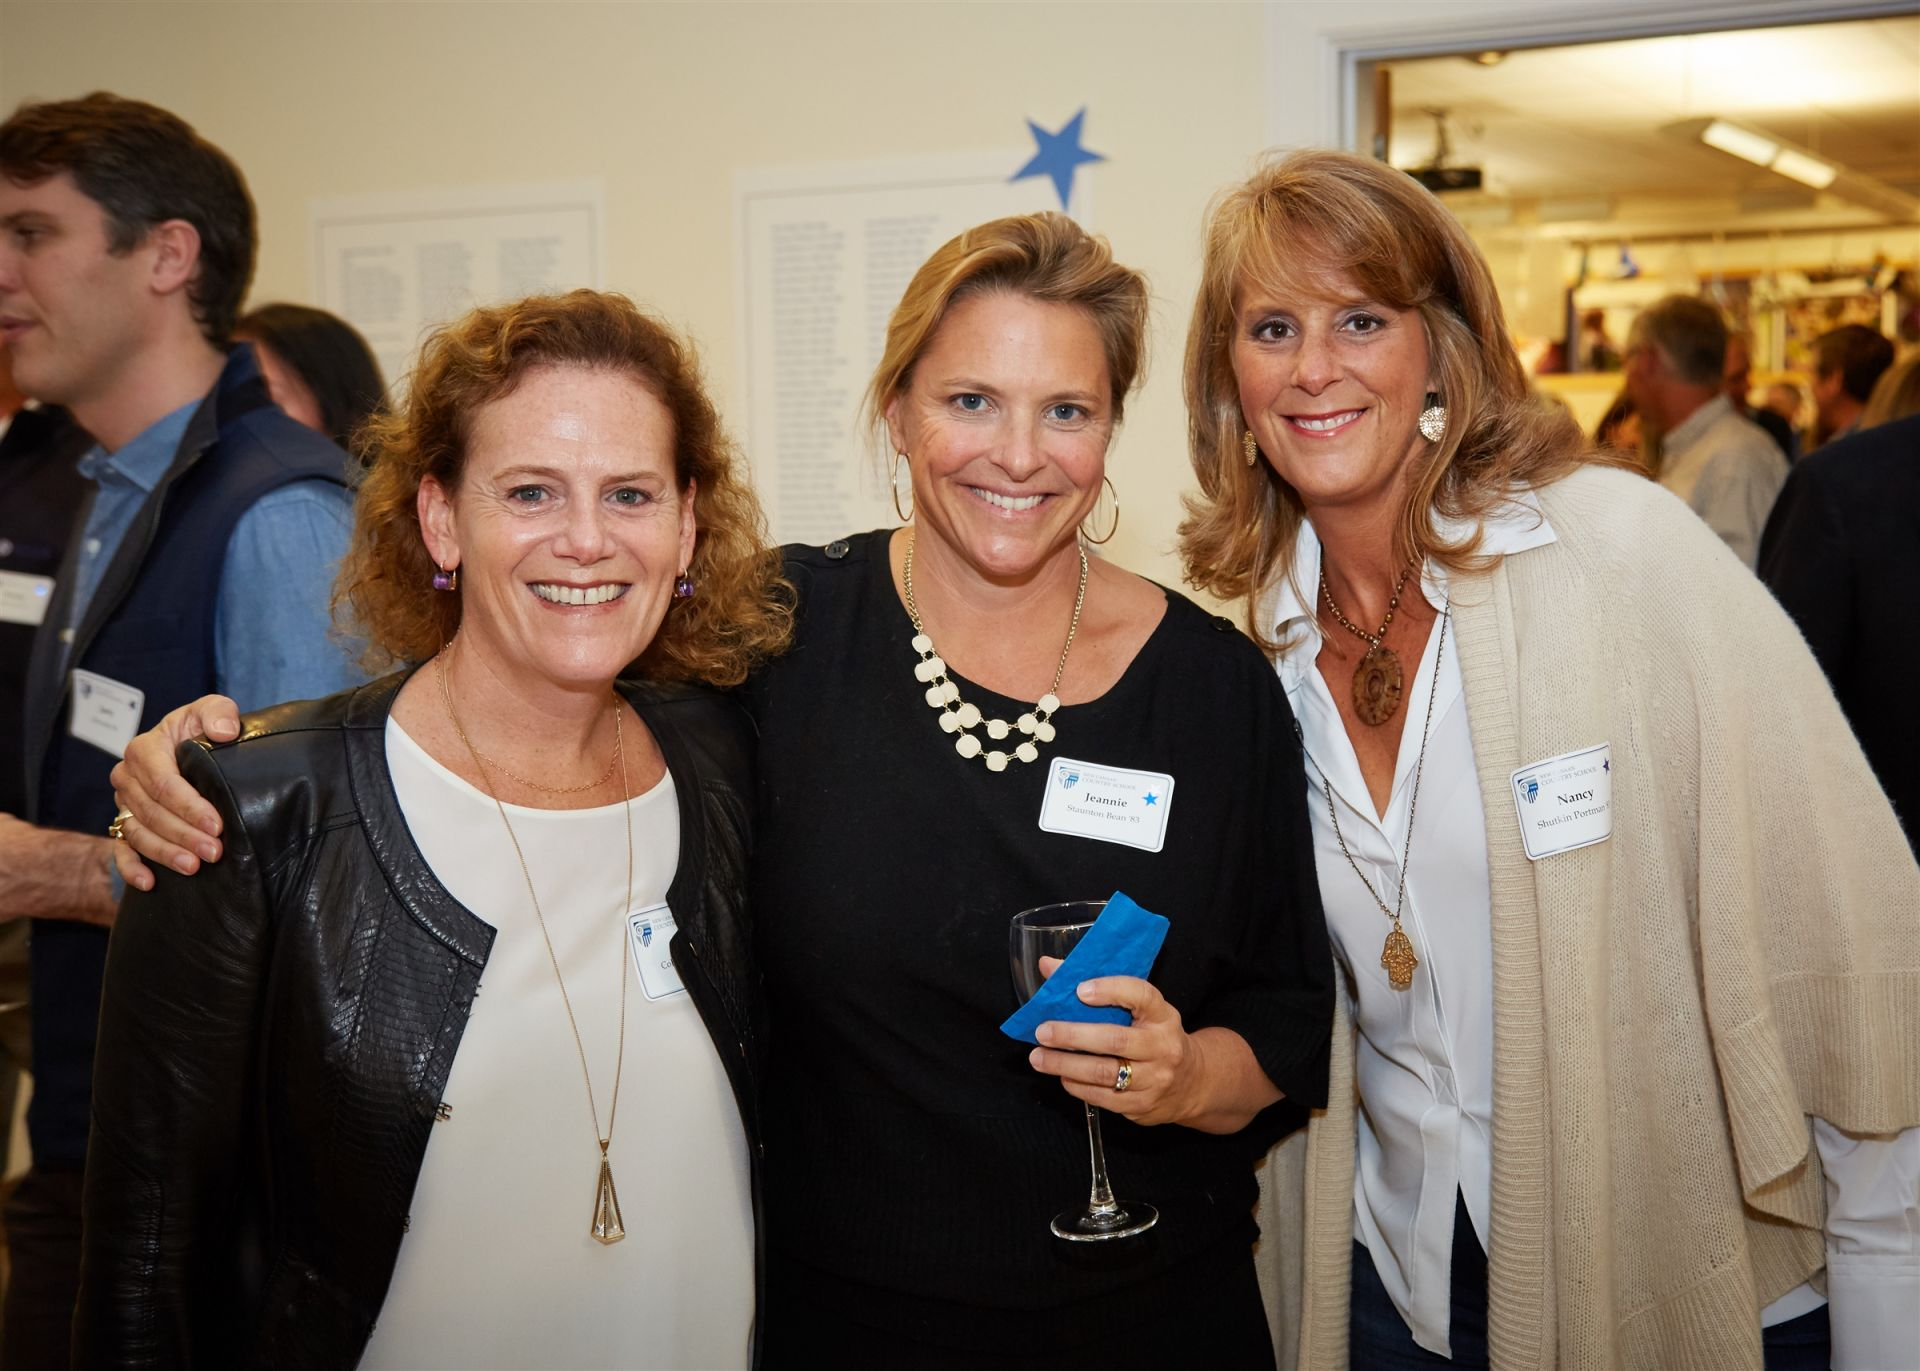 Centennial Celebration Weekend: Jennifer Zonis '82, Jeannie Bean '83, Nancy Shutkin Portman '83